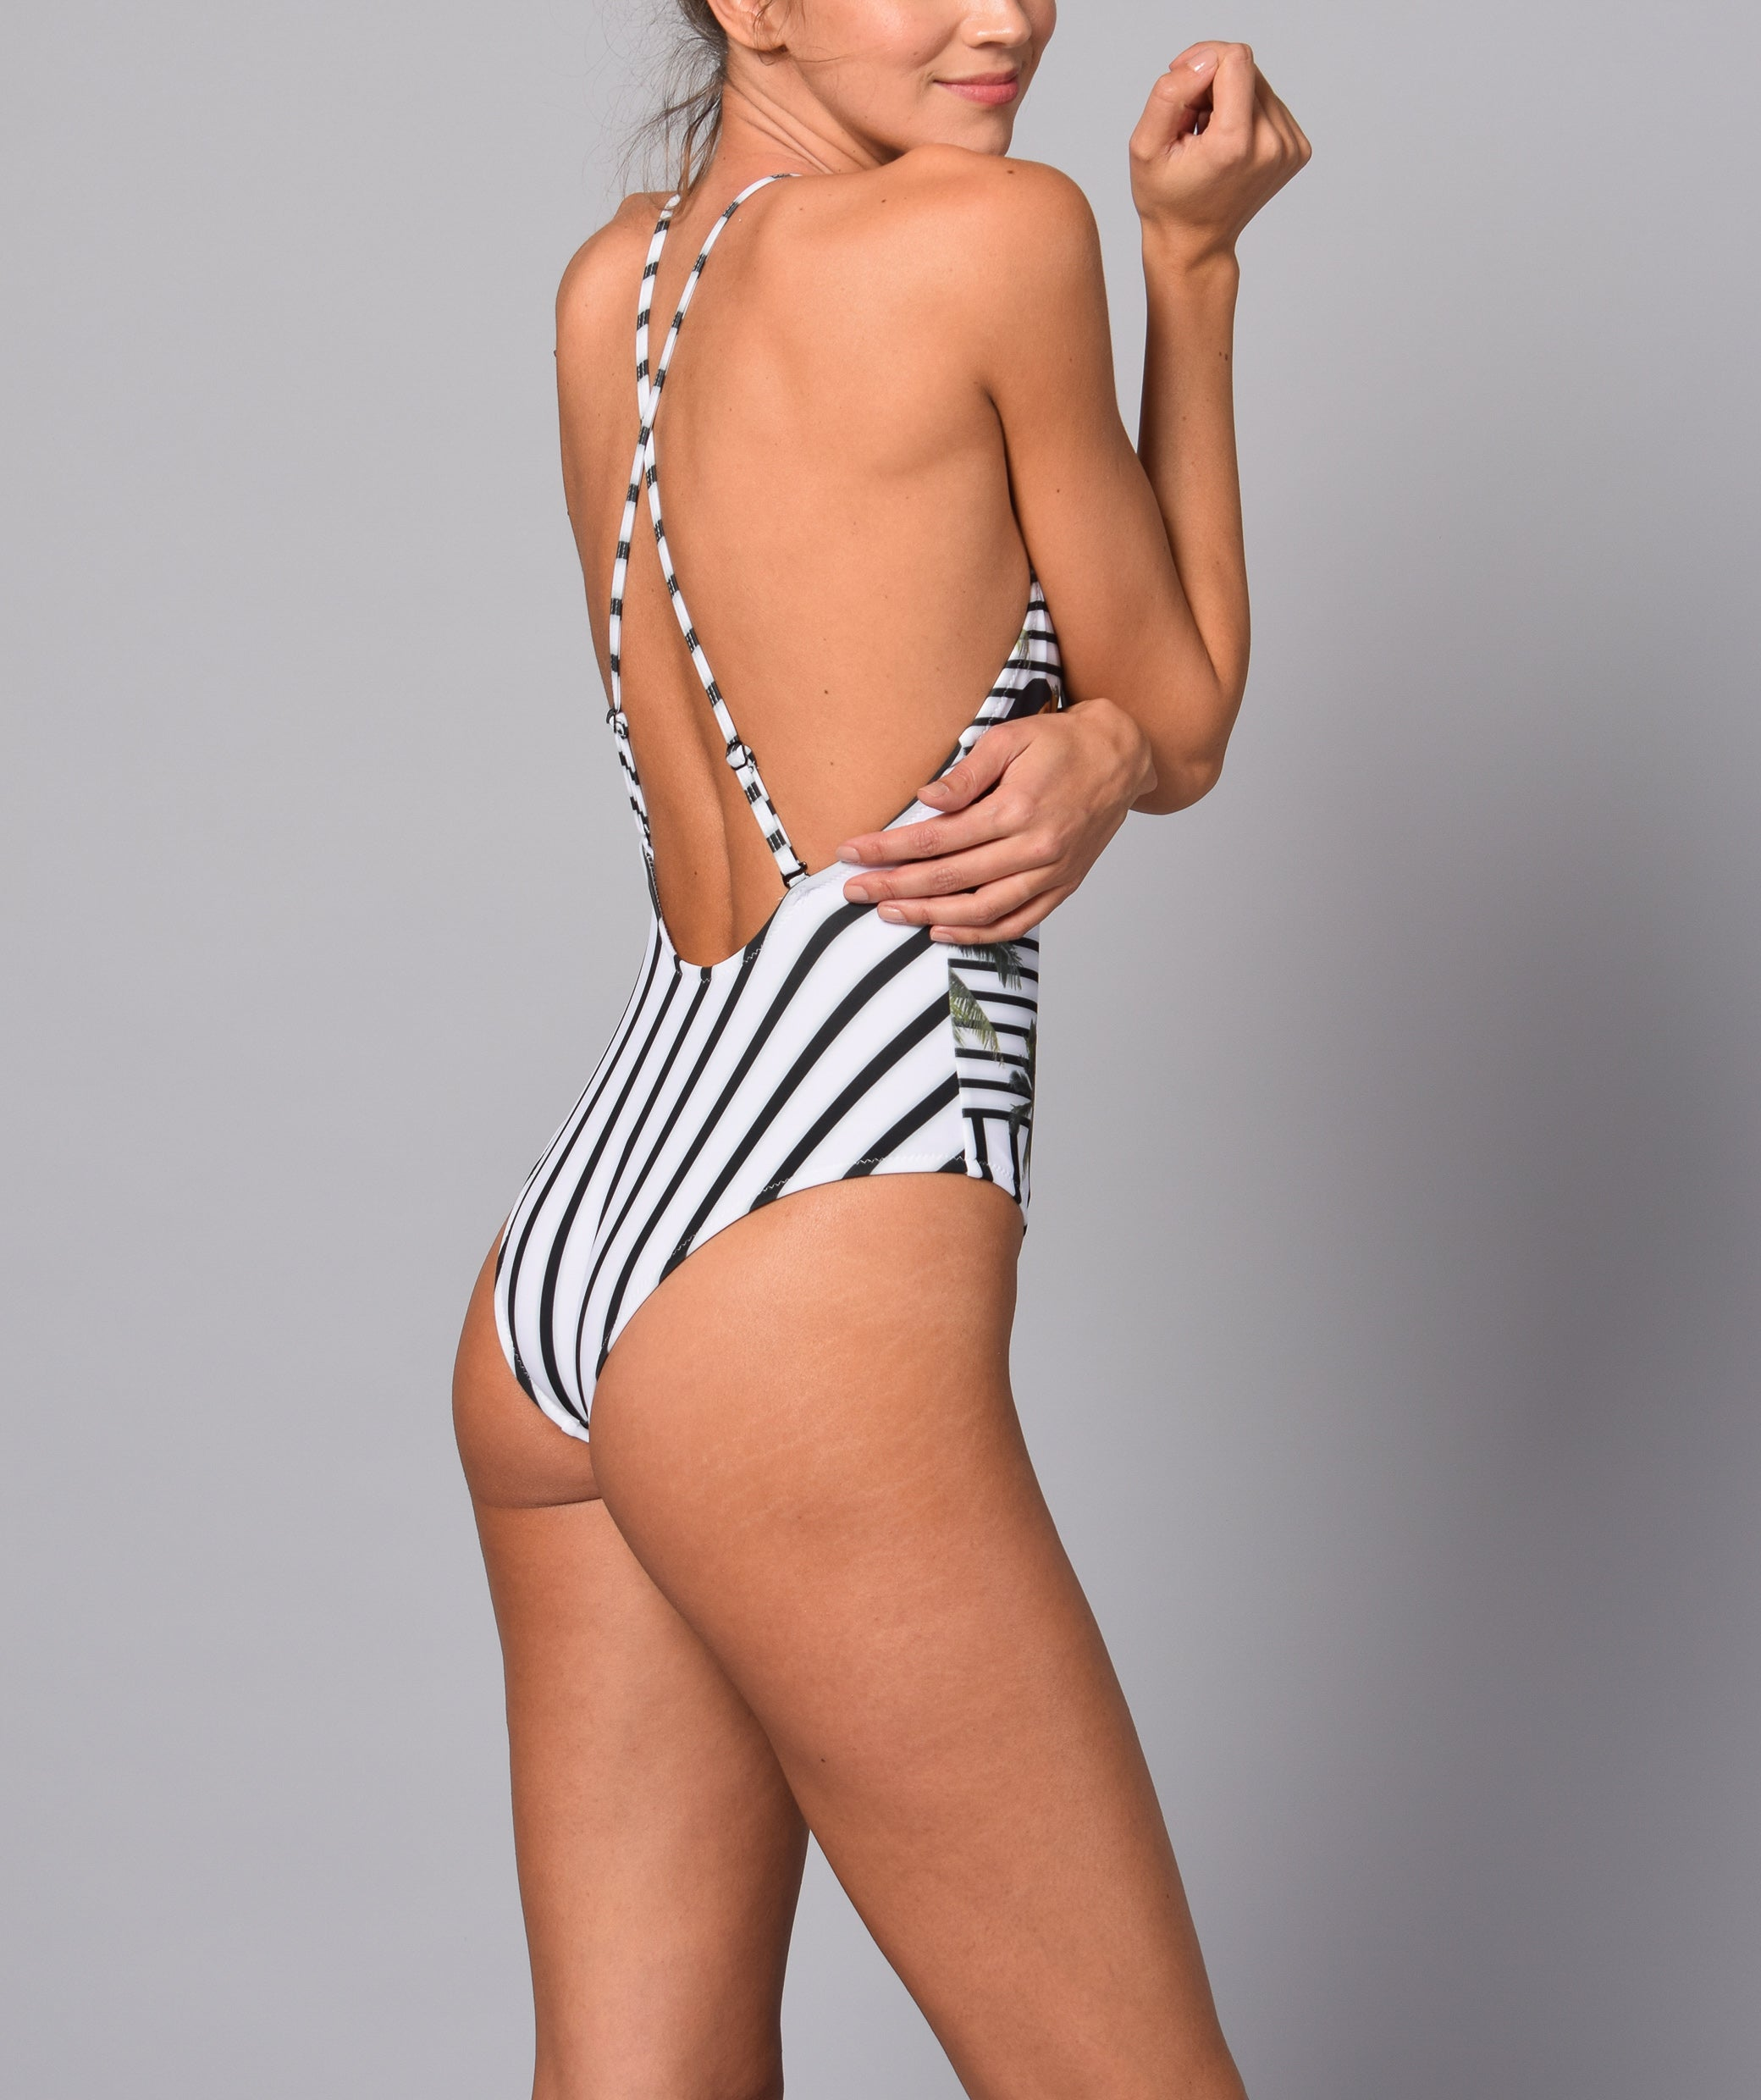 Boogaloo Girl wearing One-Piece Swimsuit TOCO Cross Back - Back